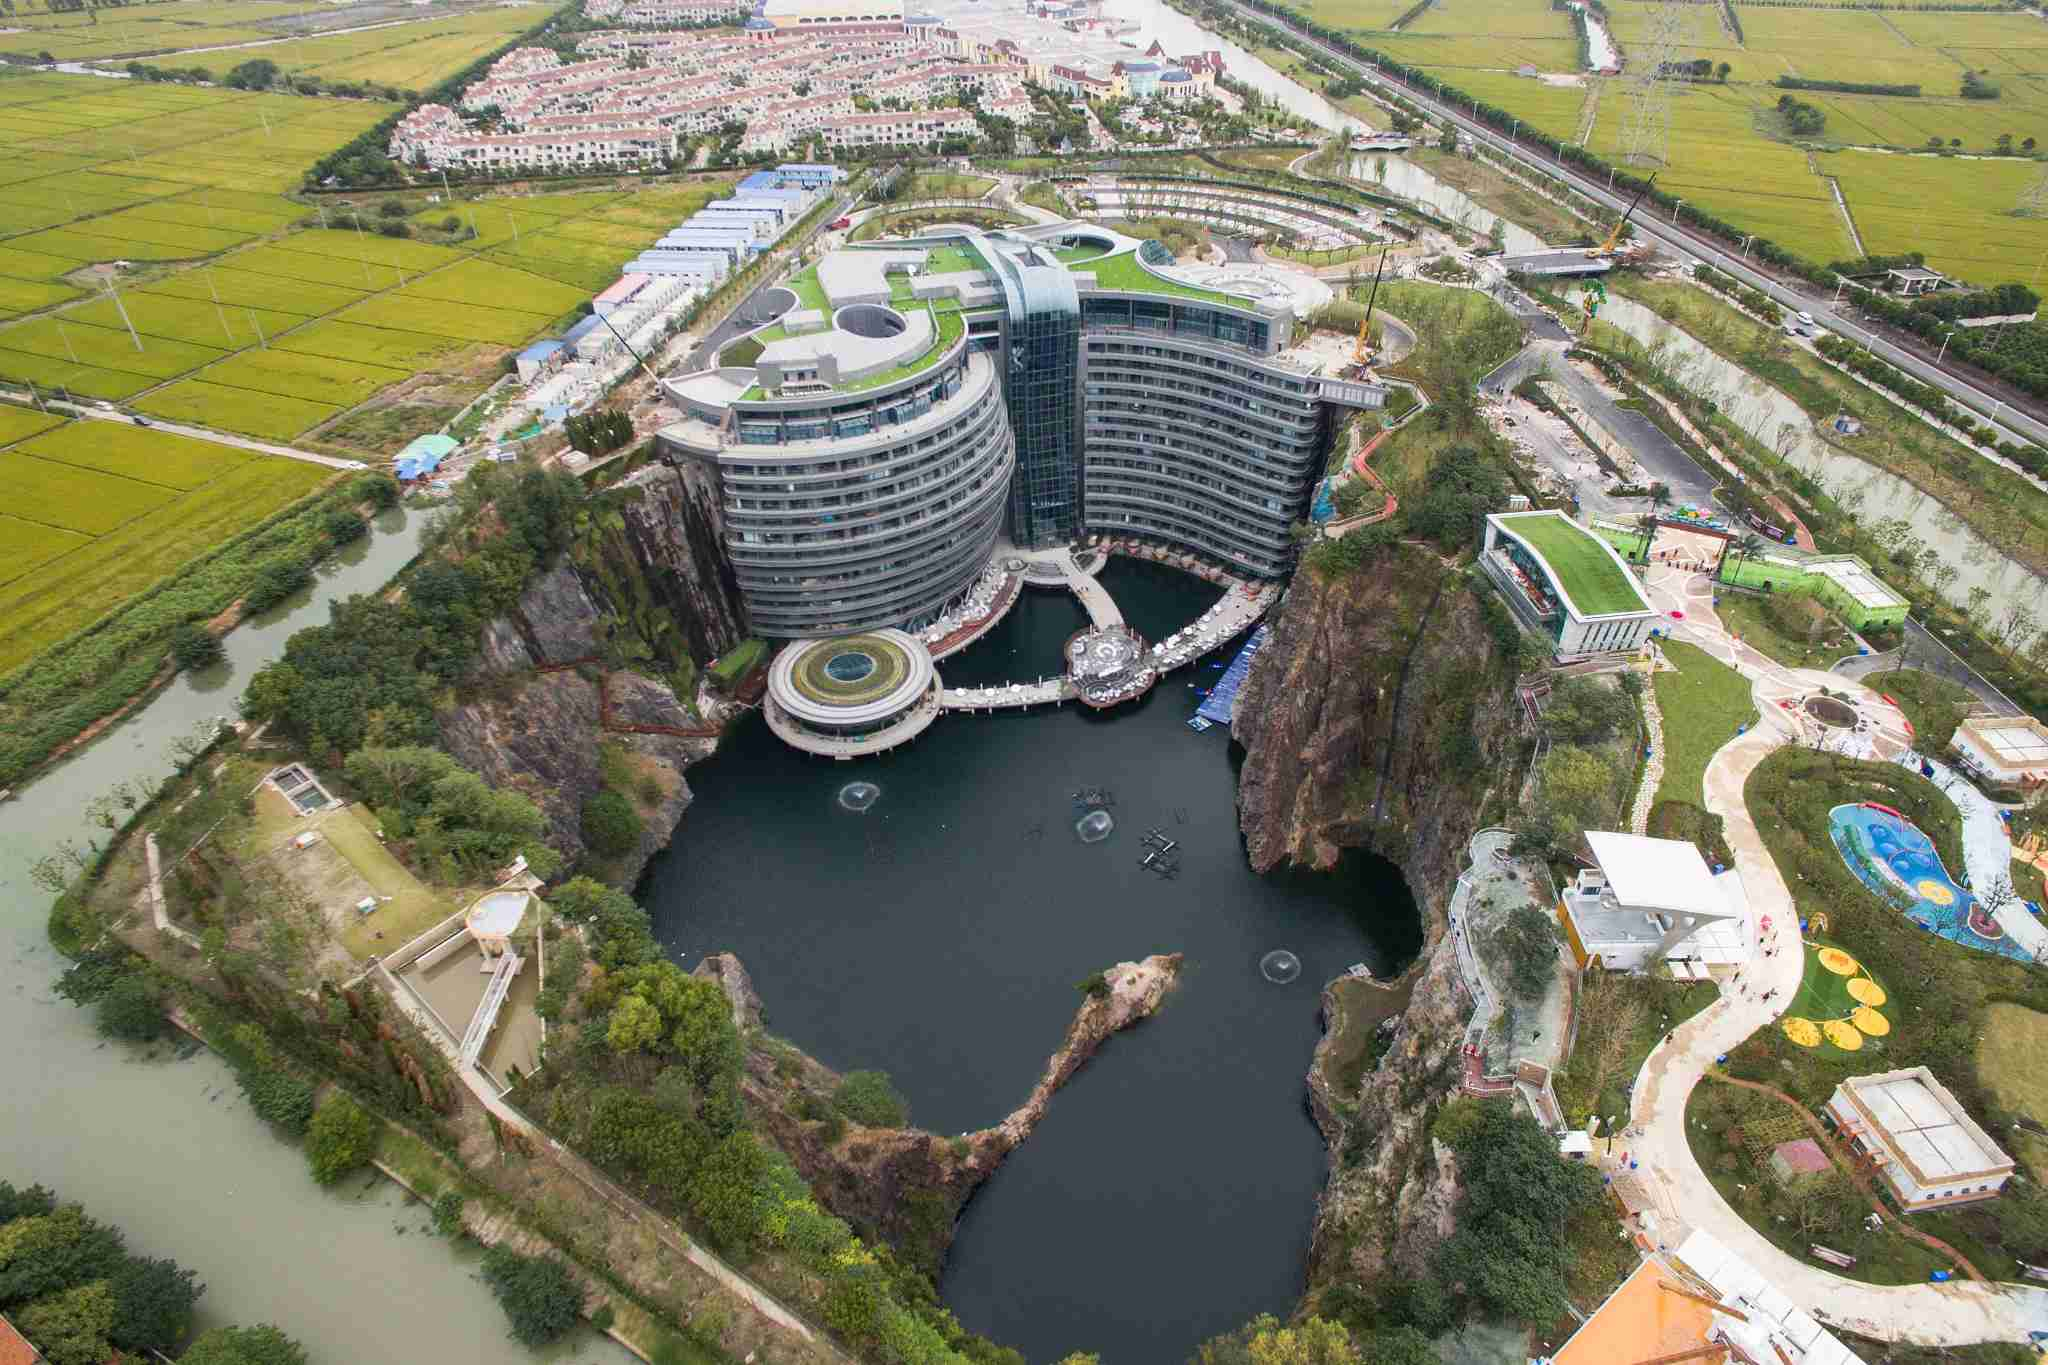 An aerial view of the luxury hotel InterContinental Shanghai Wonderland built inside a deserted quarry pit in southwestern Shanghai, China Wednesday, Oct. 10, 2018. The building has 18 floors, 16 of which are below ground including two submerged under water. After multiple delays, the hotel, designed by British firm Atkins, will finally open later this year.PHOTOGRAPH BY Feature China / Barcroft Images (Photo credit should read Feature China / Barcroft Images / Barcroft Media via Getty Images)